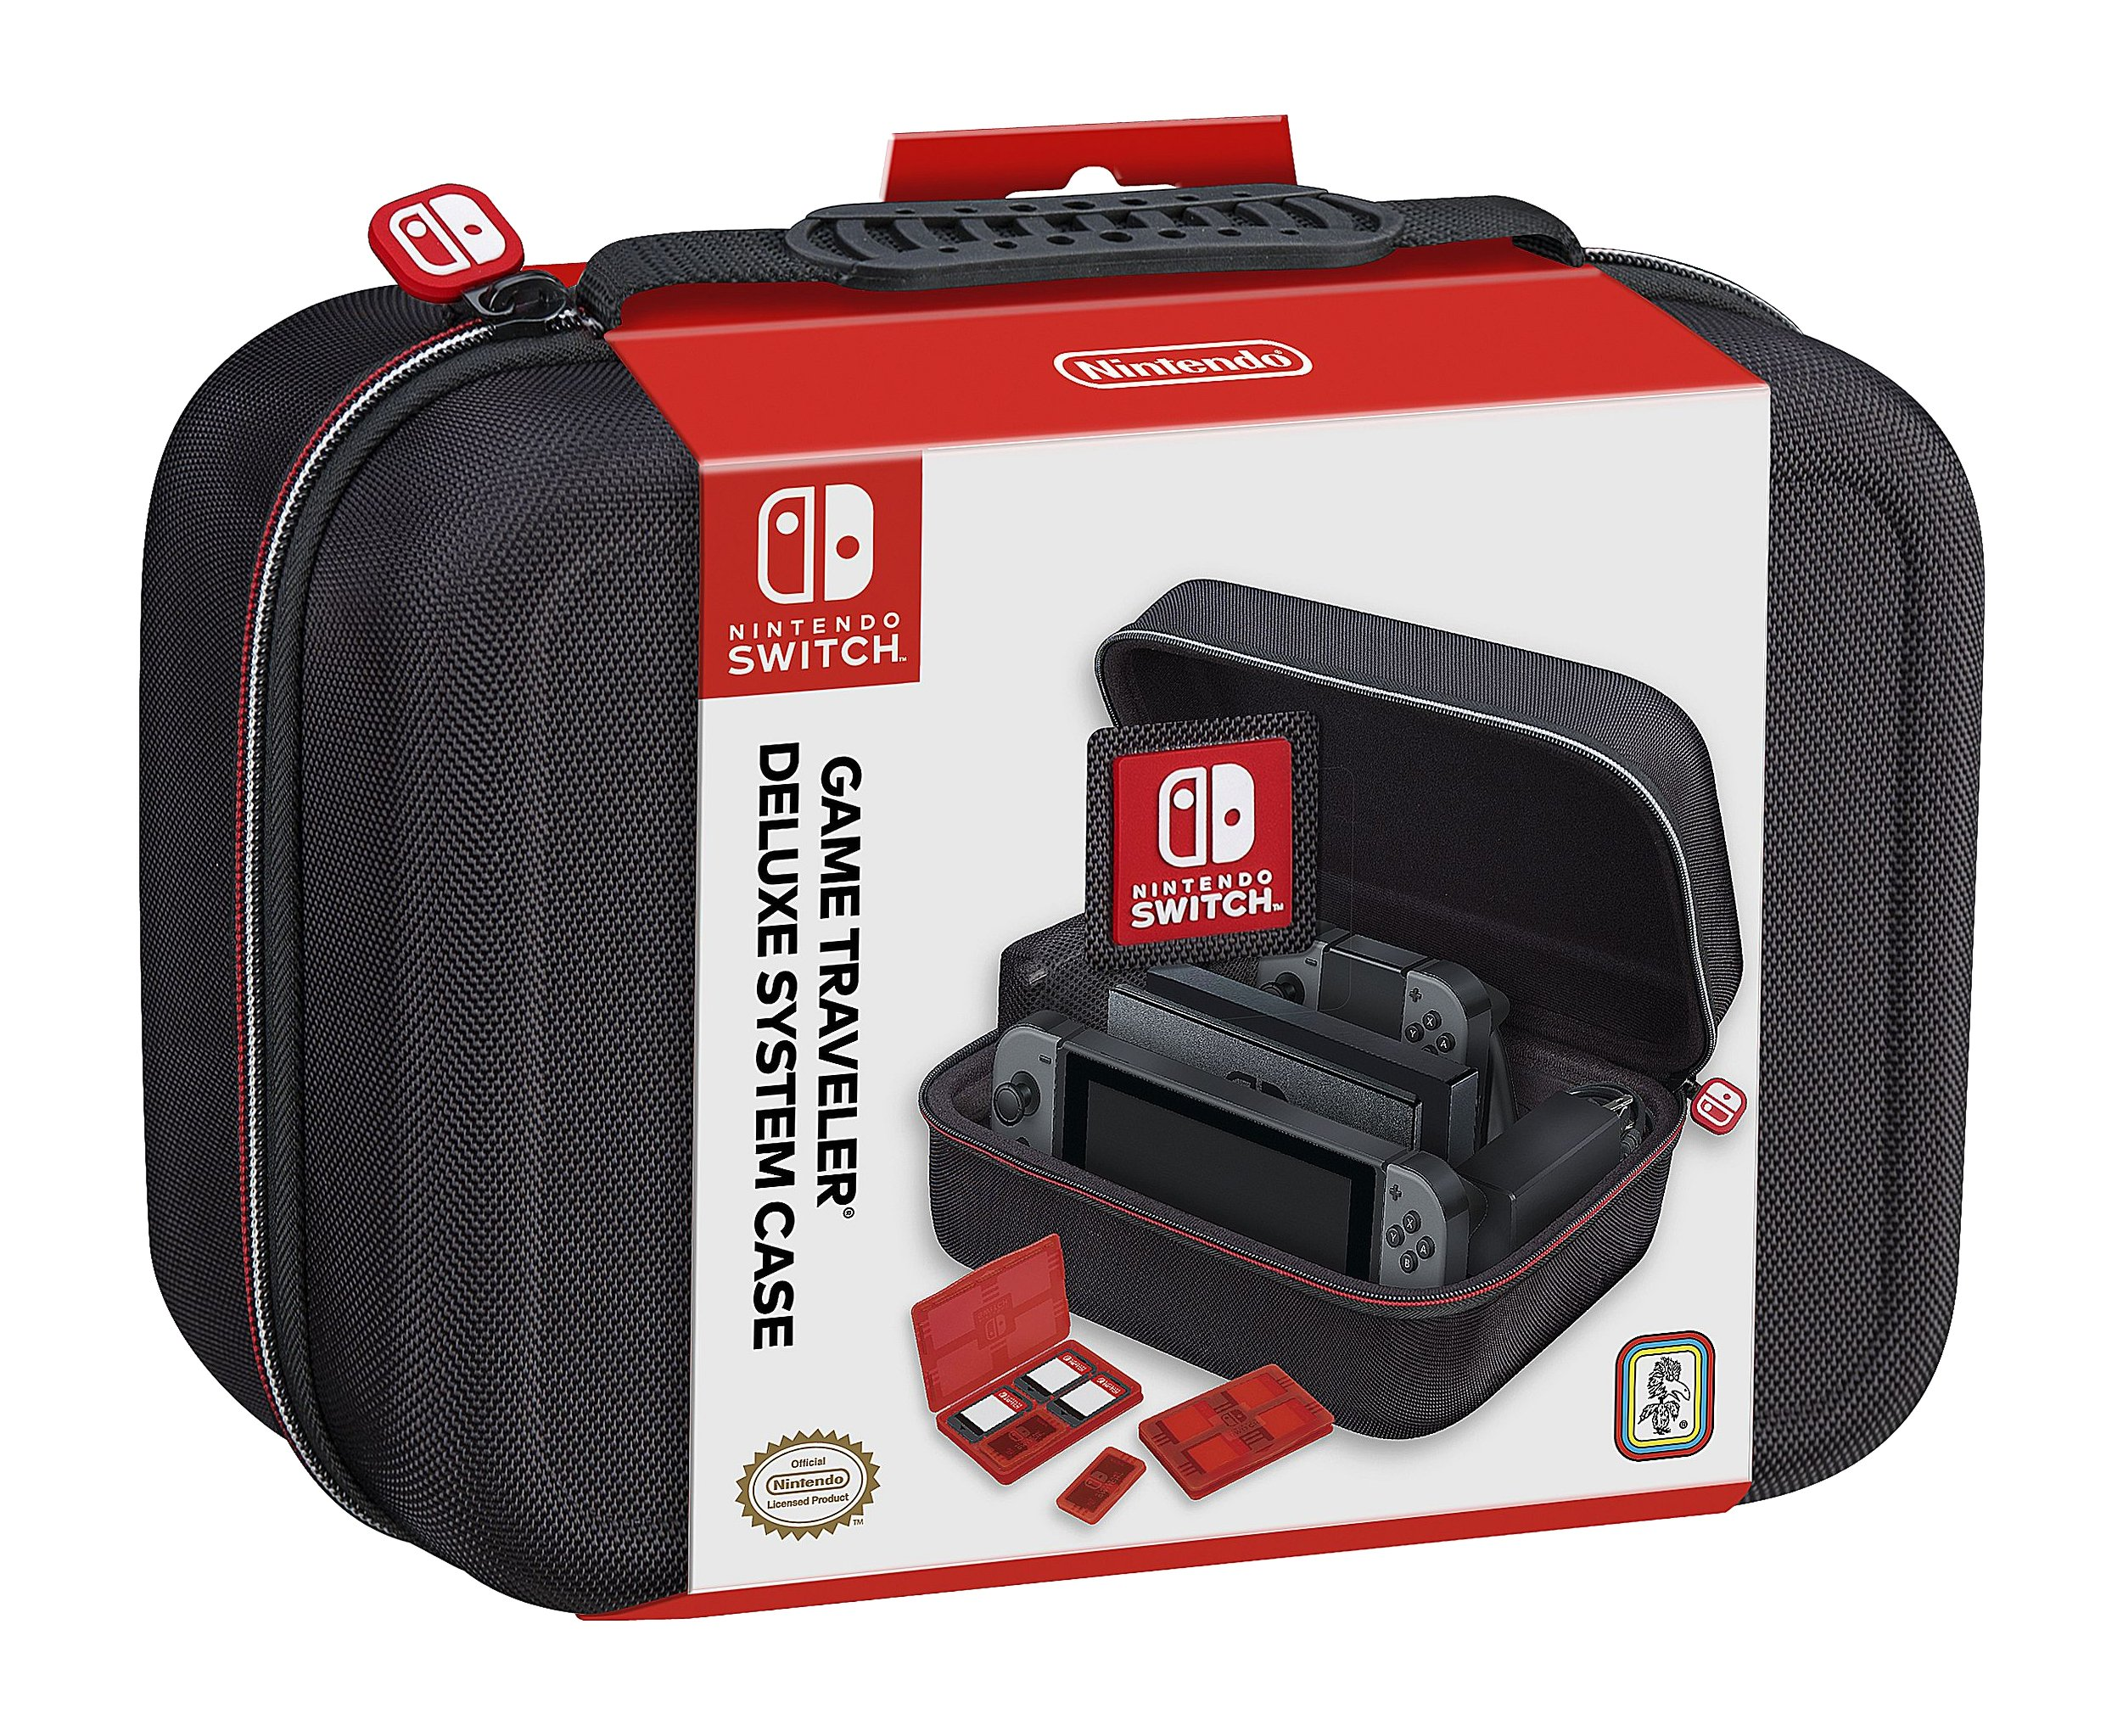 RDS Industries Nintendo Switch System Carrying Case - Protective Deluxe Travel System Case - Black Ballistic Nylon Exterior - Official Nintendo Licensed Product